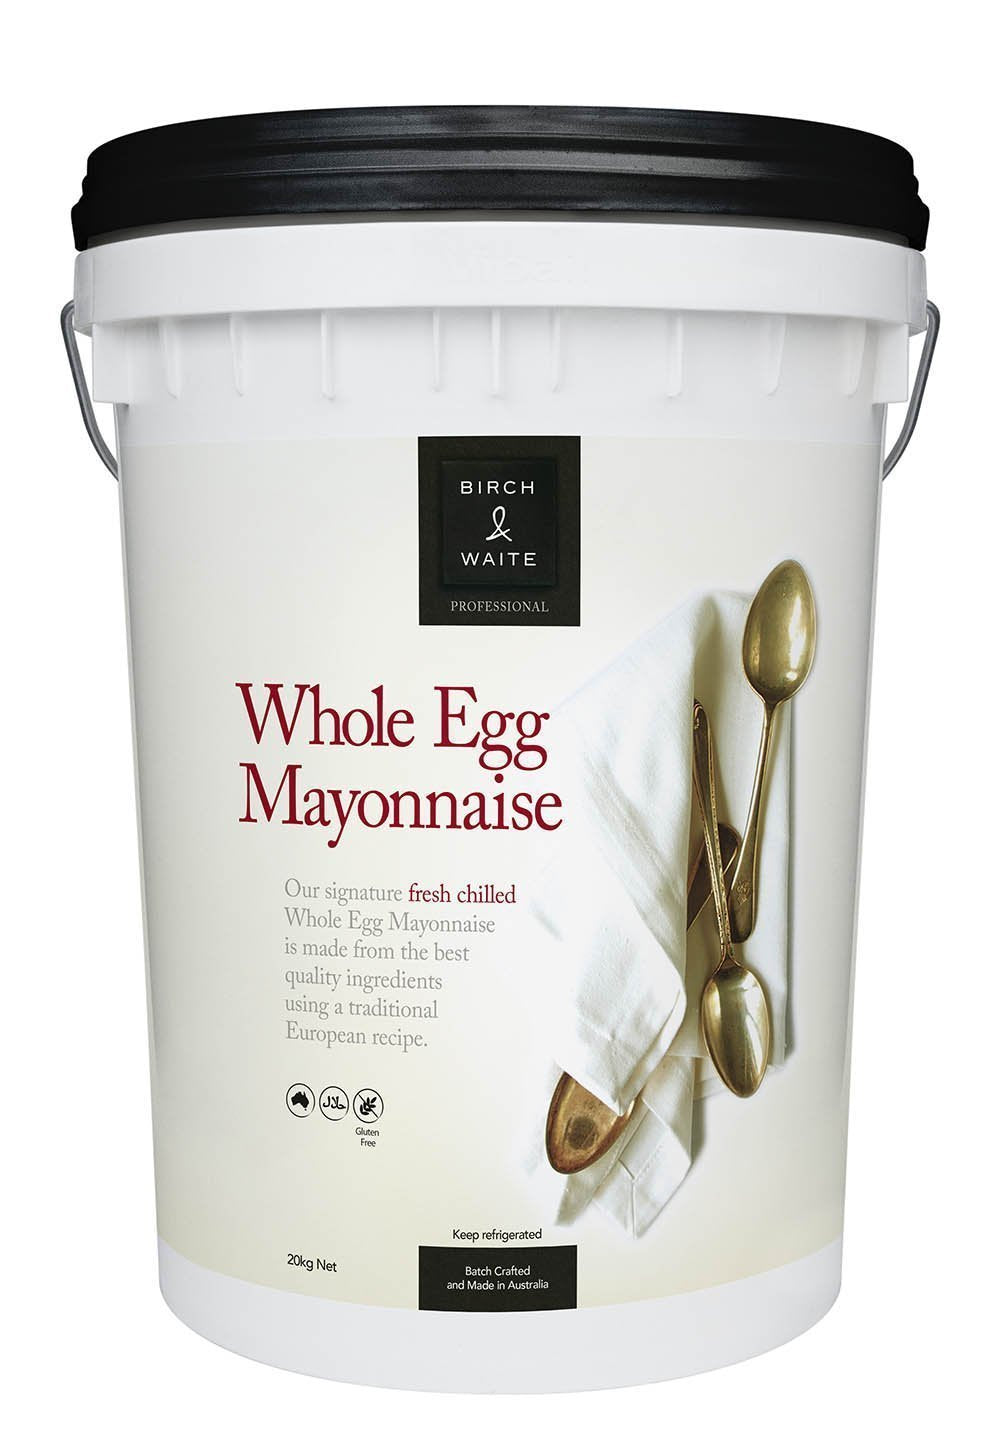 Mayonnaise Whole Egg 20kg Tub Birch & Waite